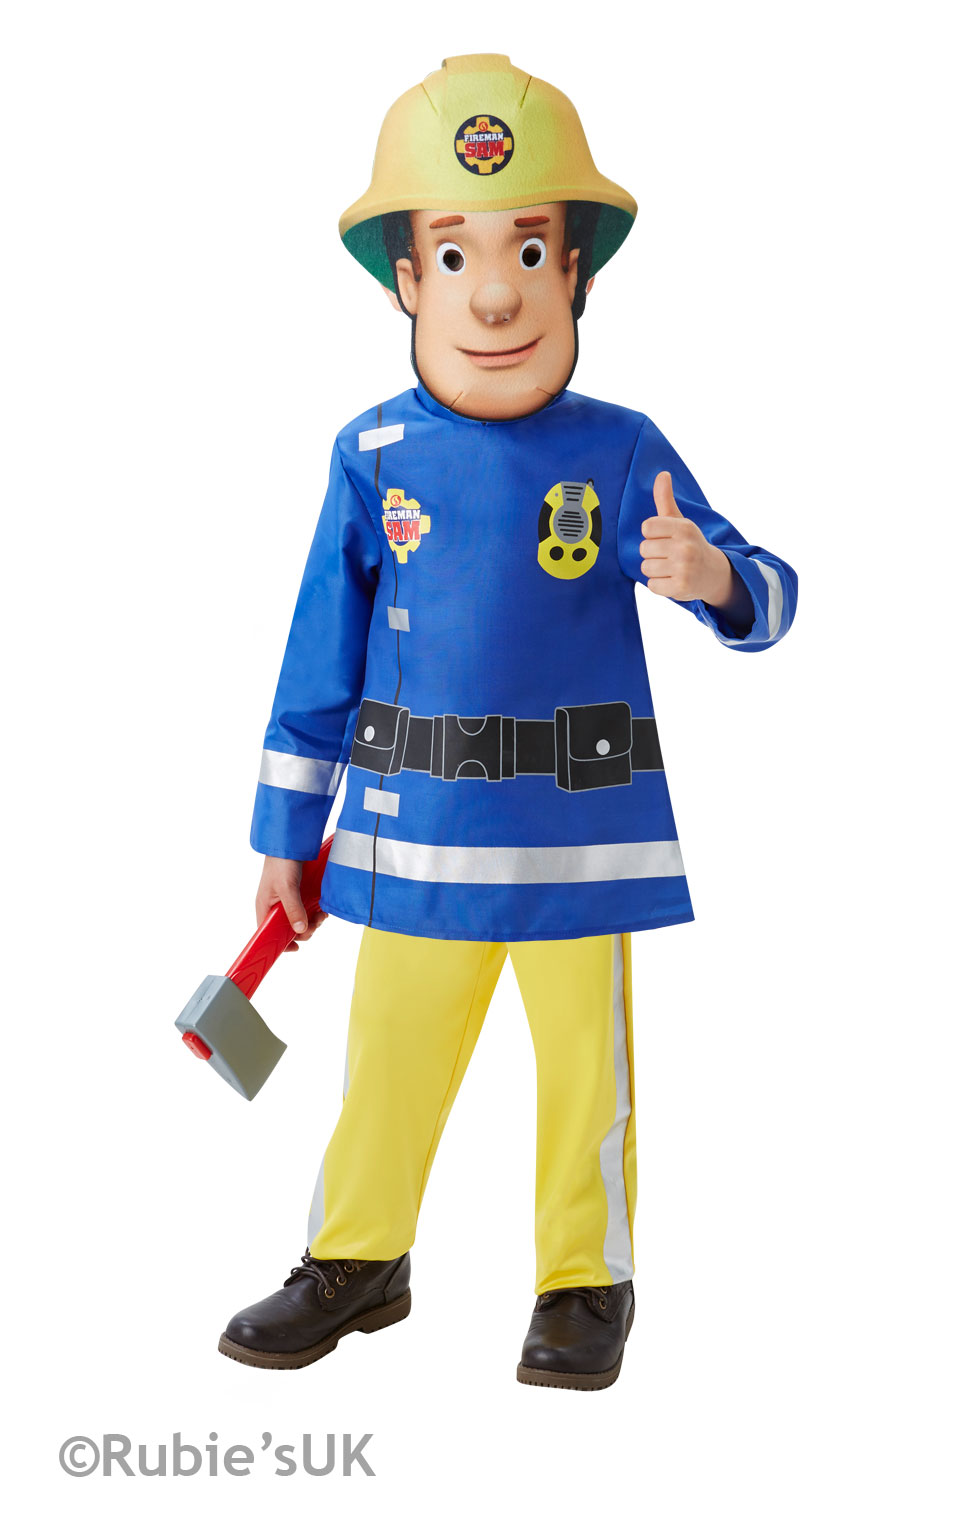 Fireman Sam costume 510156 toddler 2-3 years